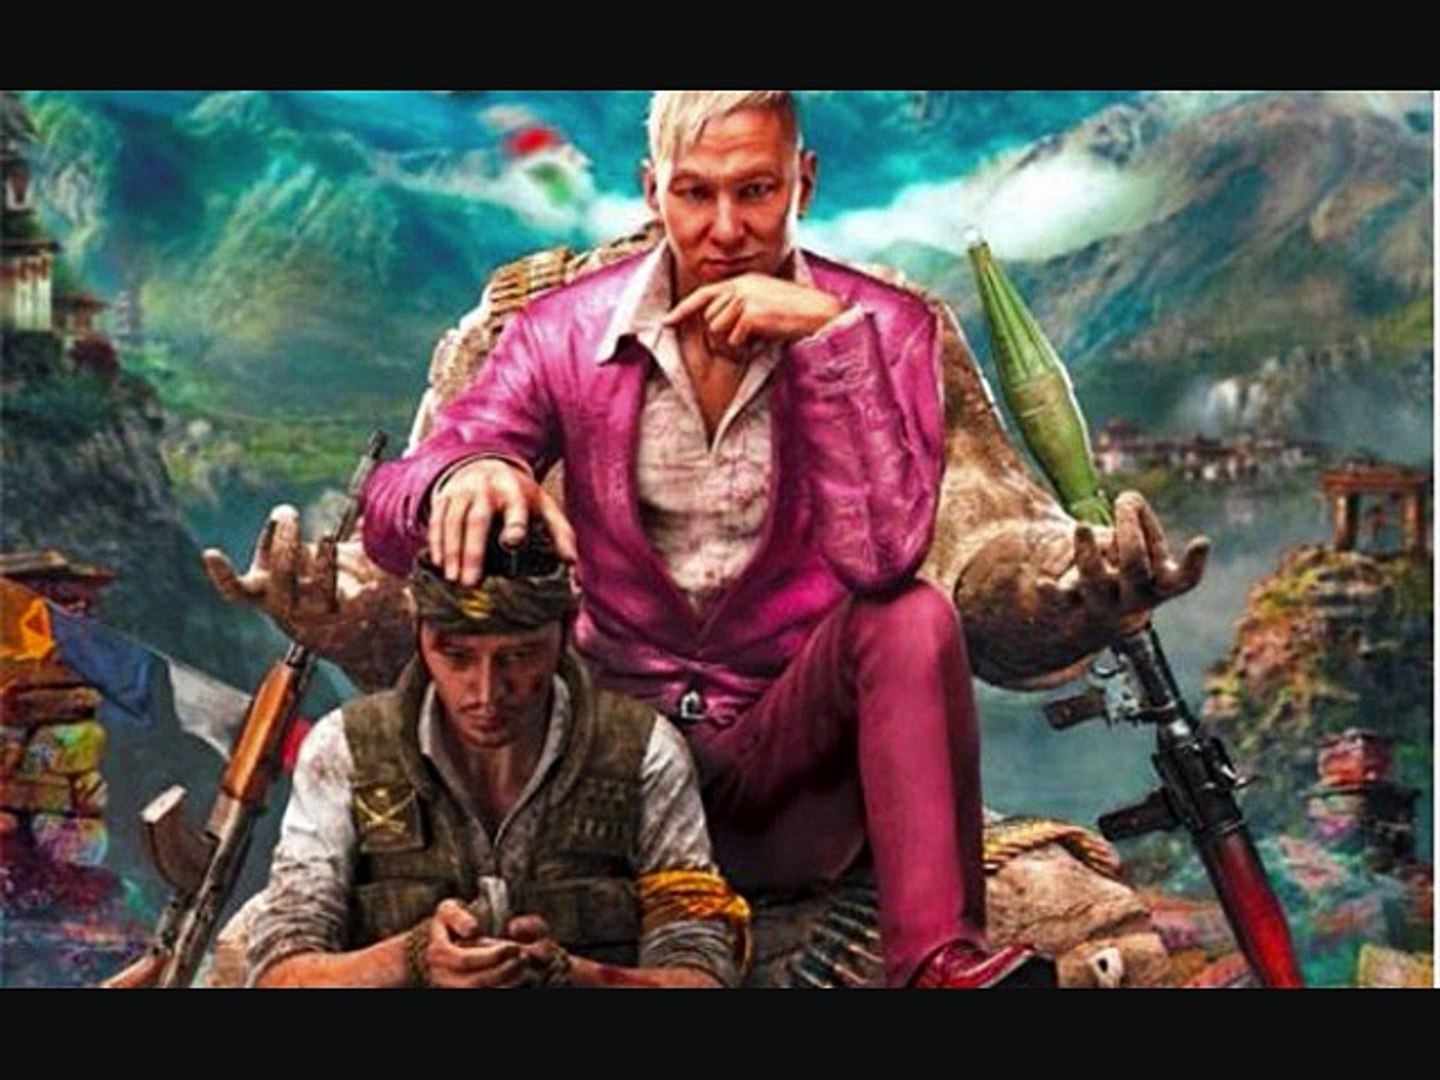 far cry 4 full version download available